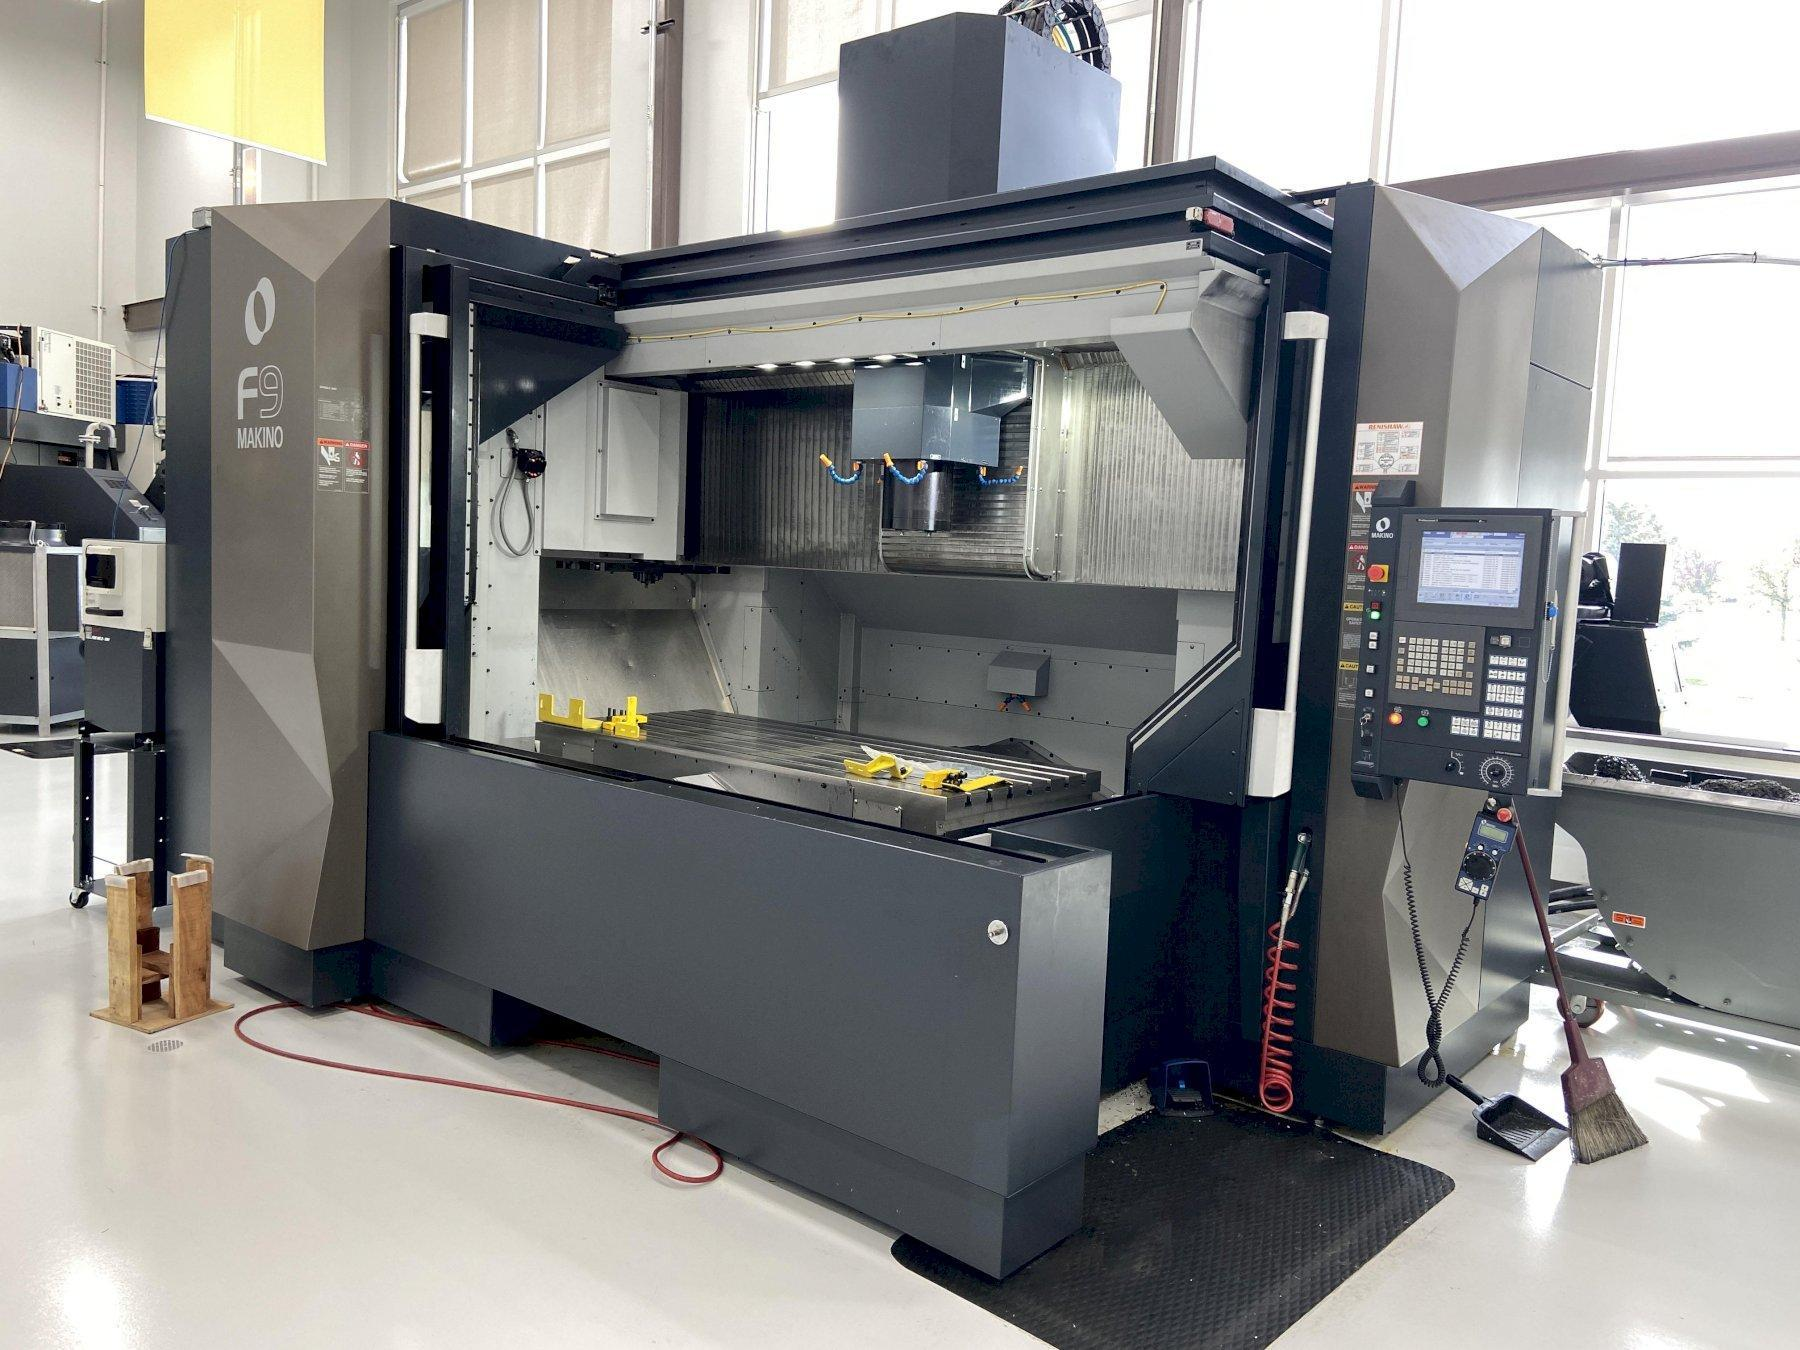 Makino F9 CNC Vertical Machining Center With 10k RPM CTS, Probing, Demo  Machine